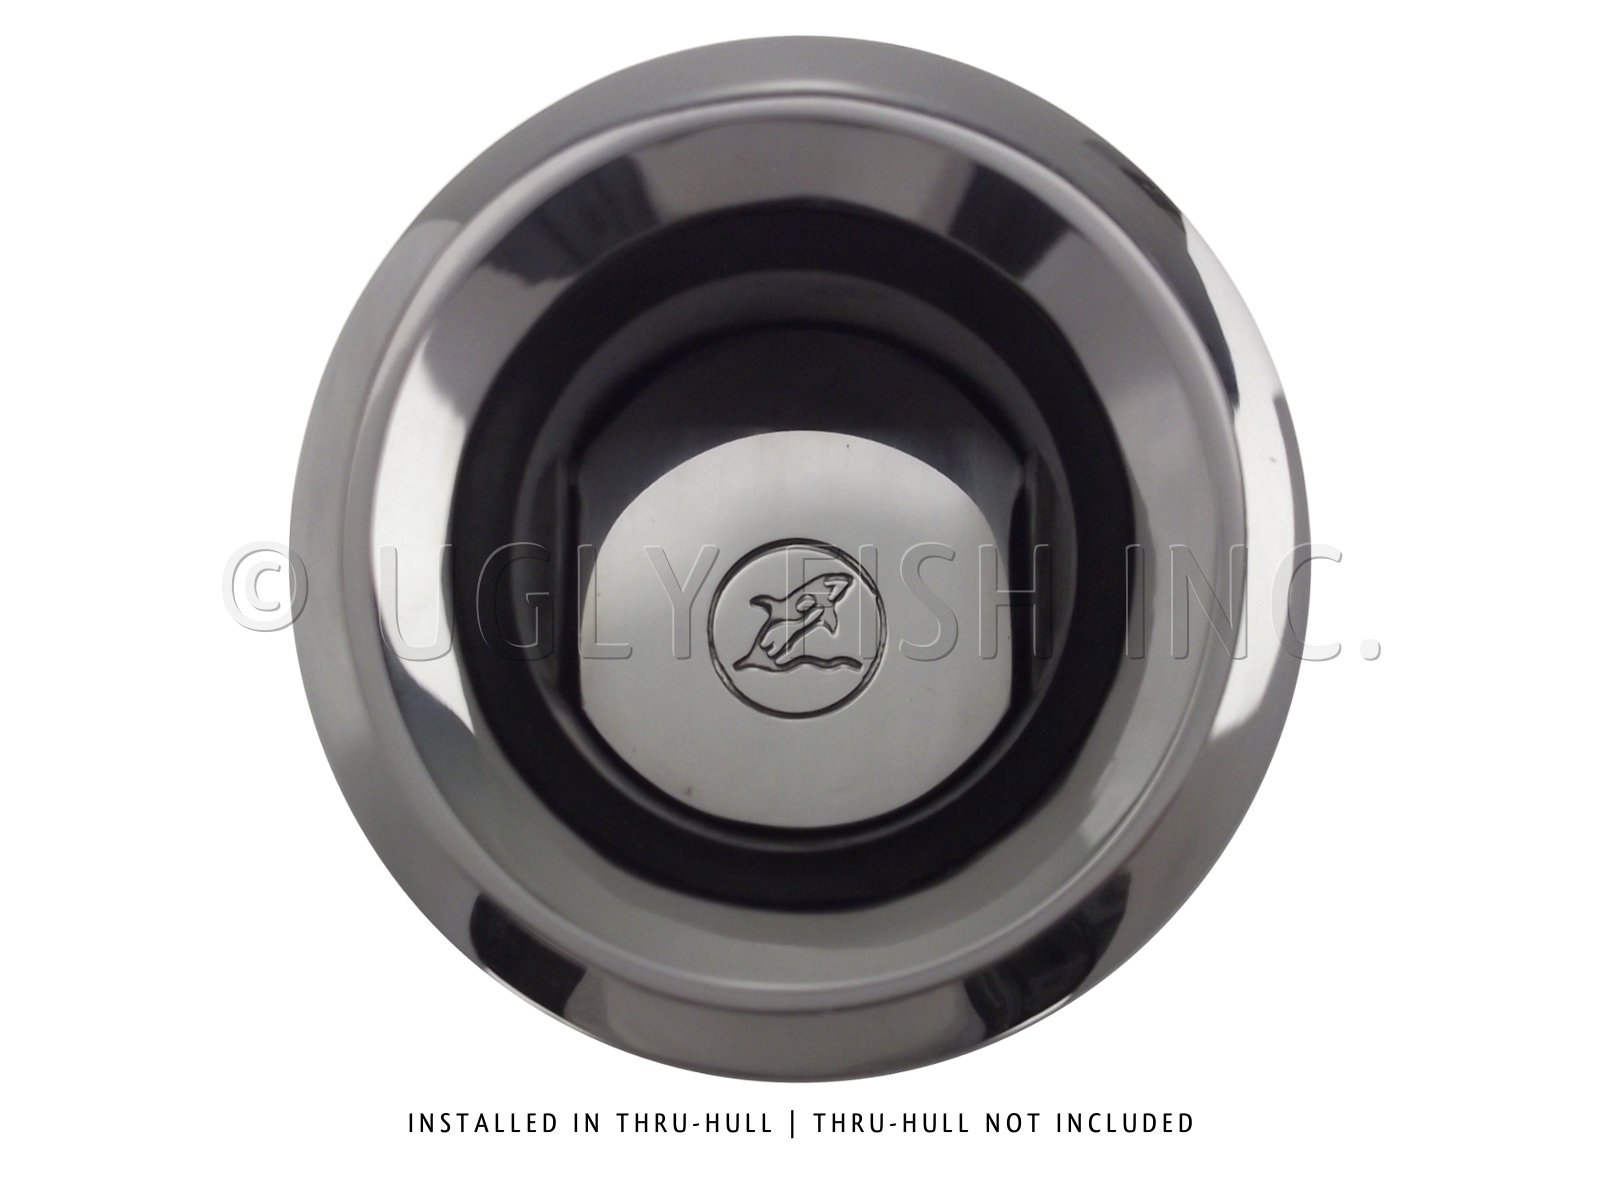 M7 05 9005215 1 Orcas 2 Quot Small Exhaust Scupper